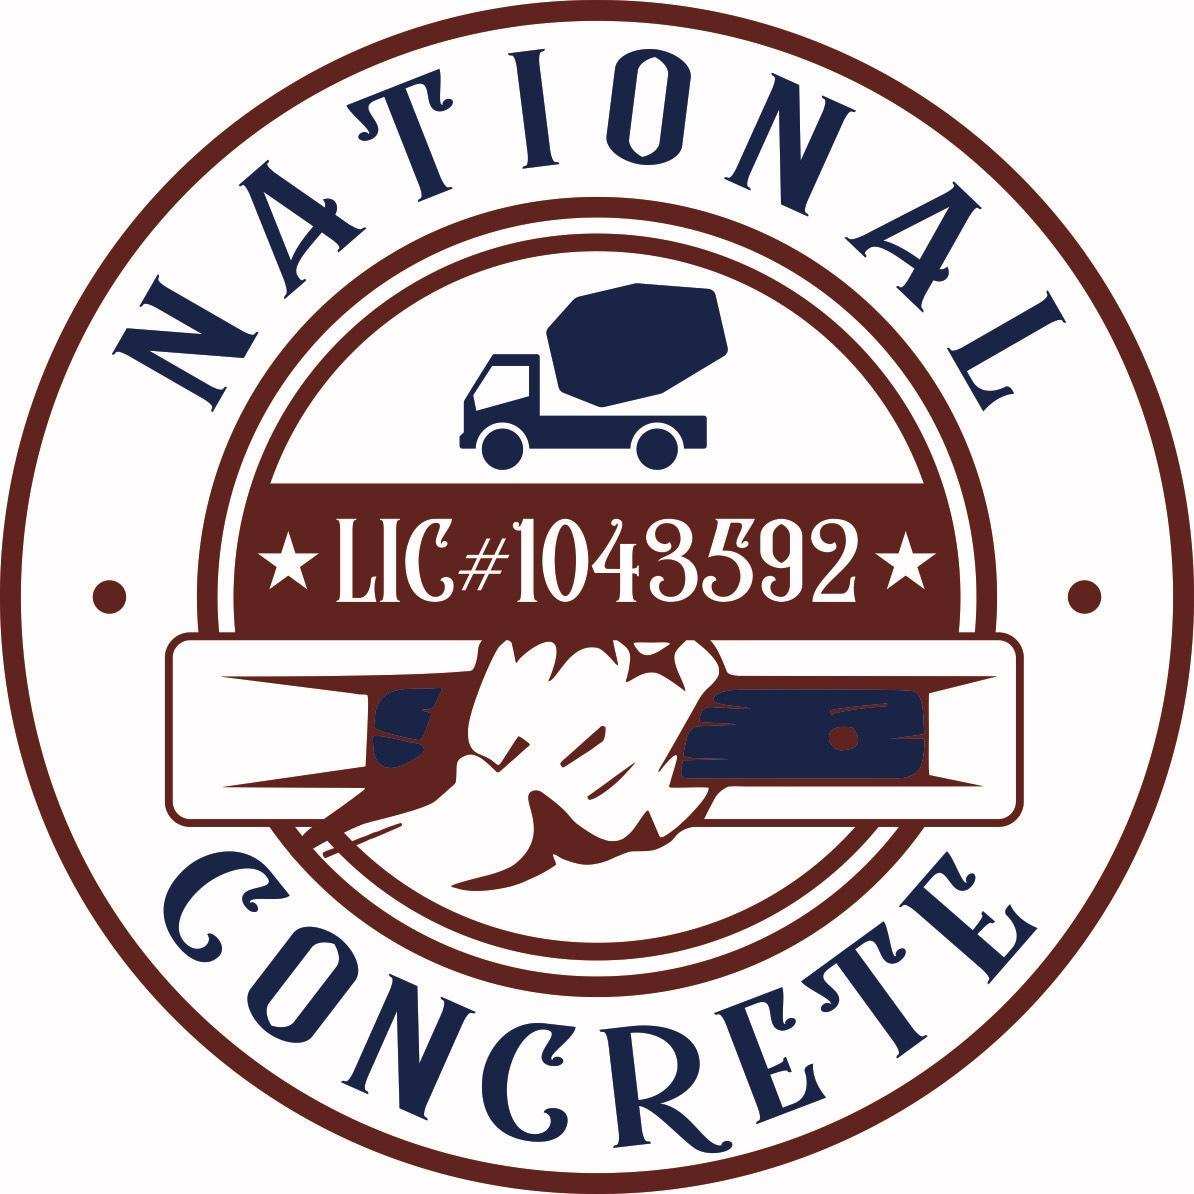 National Concrete of Bakersfield